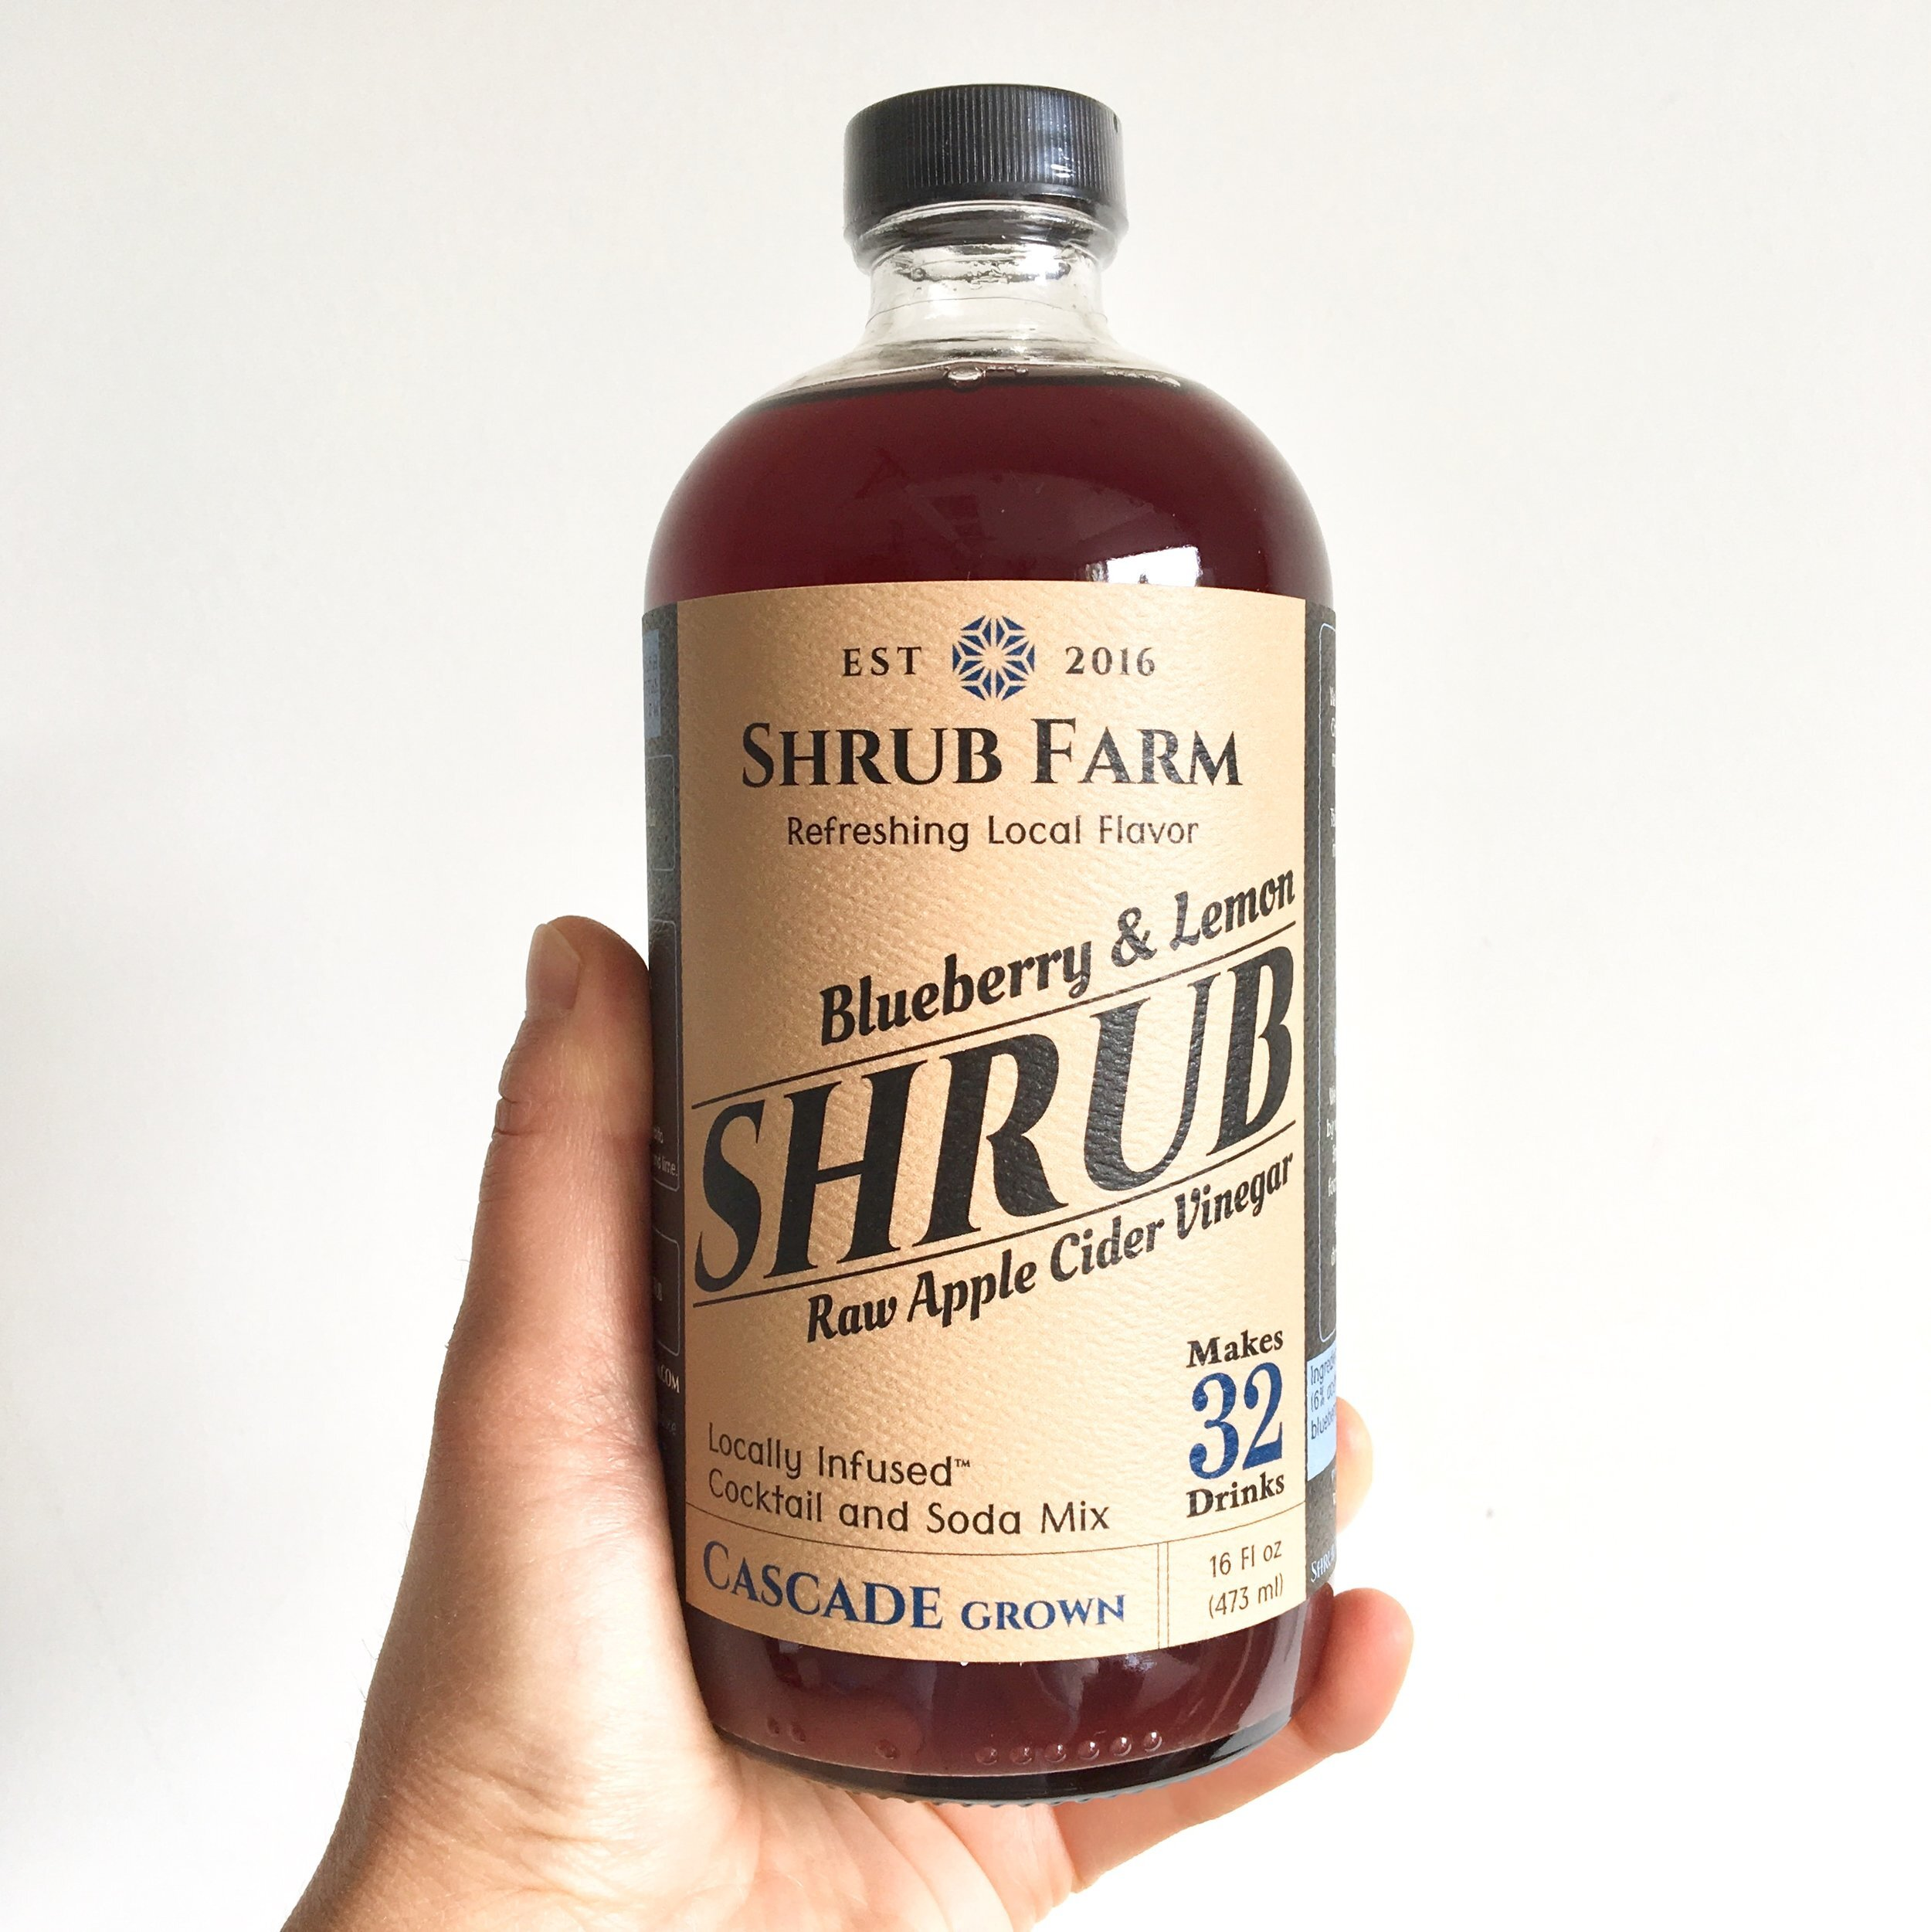 SHRUB+FARM+Blueberry+&+Lemon+Shrub+F.jpg